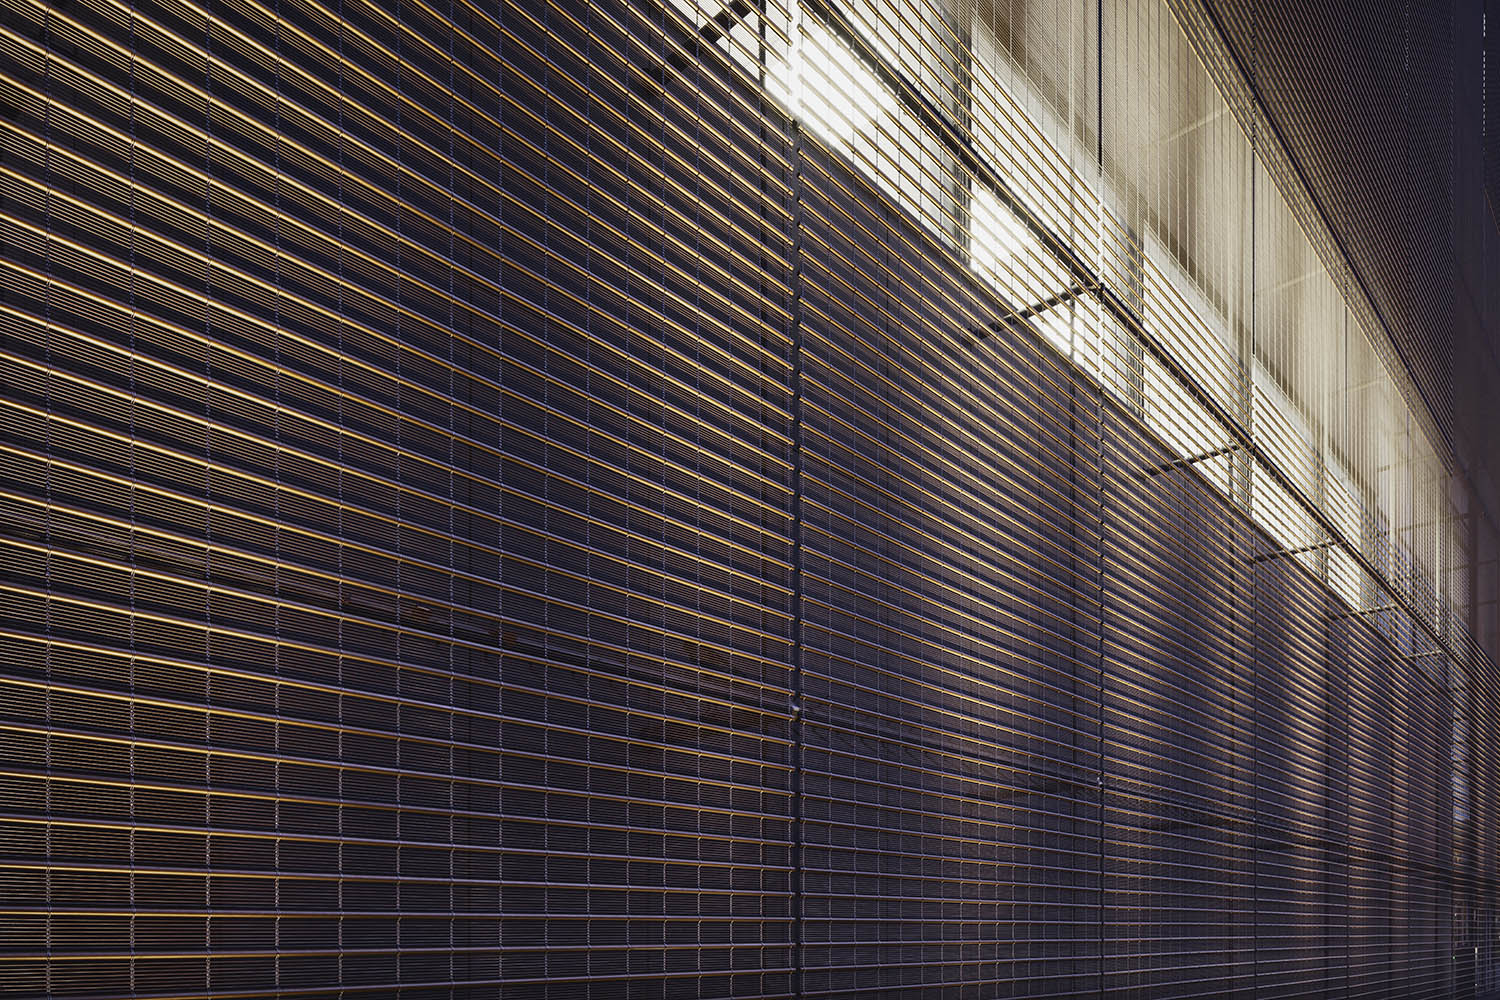 Metal mesh facade by night © Marcus Bredt